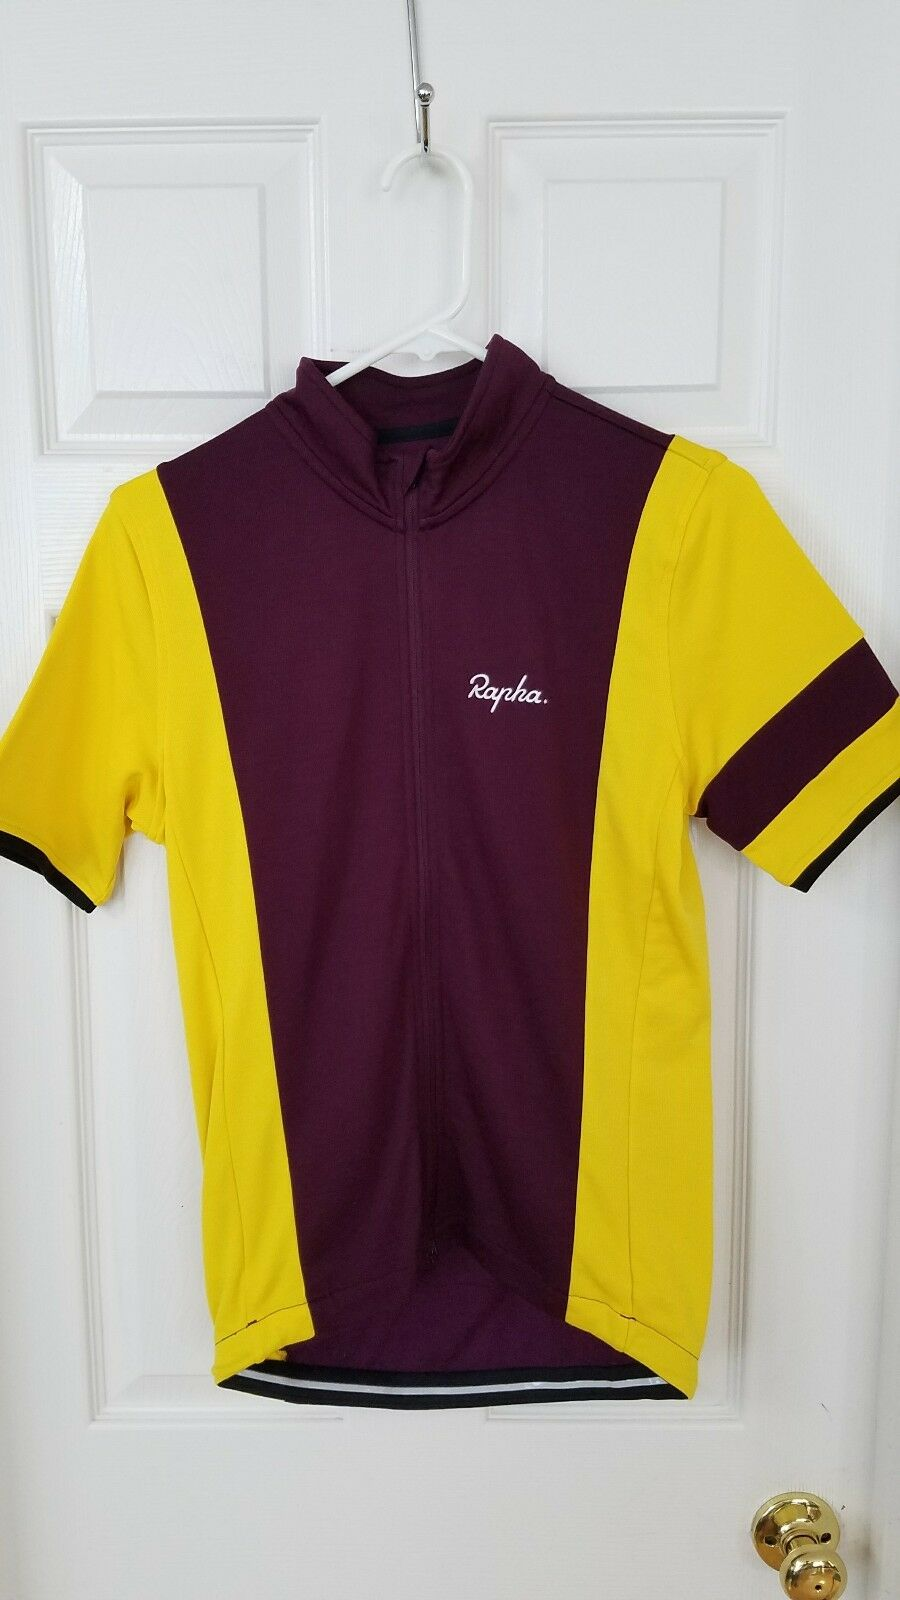 Rapha Classic Trade  team jersey  high quality & fast shipping